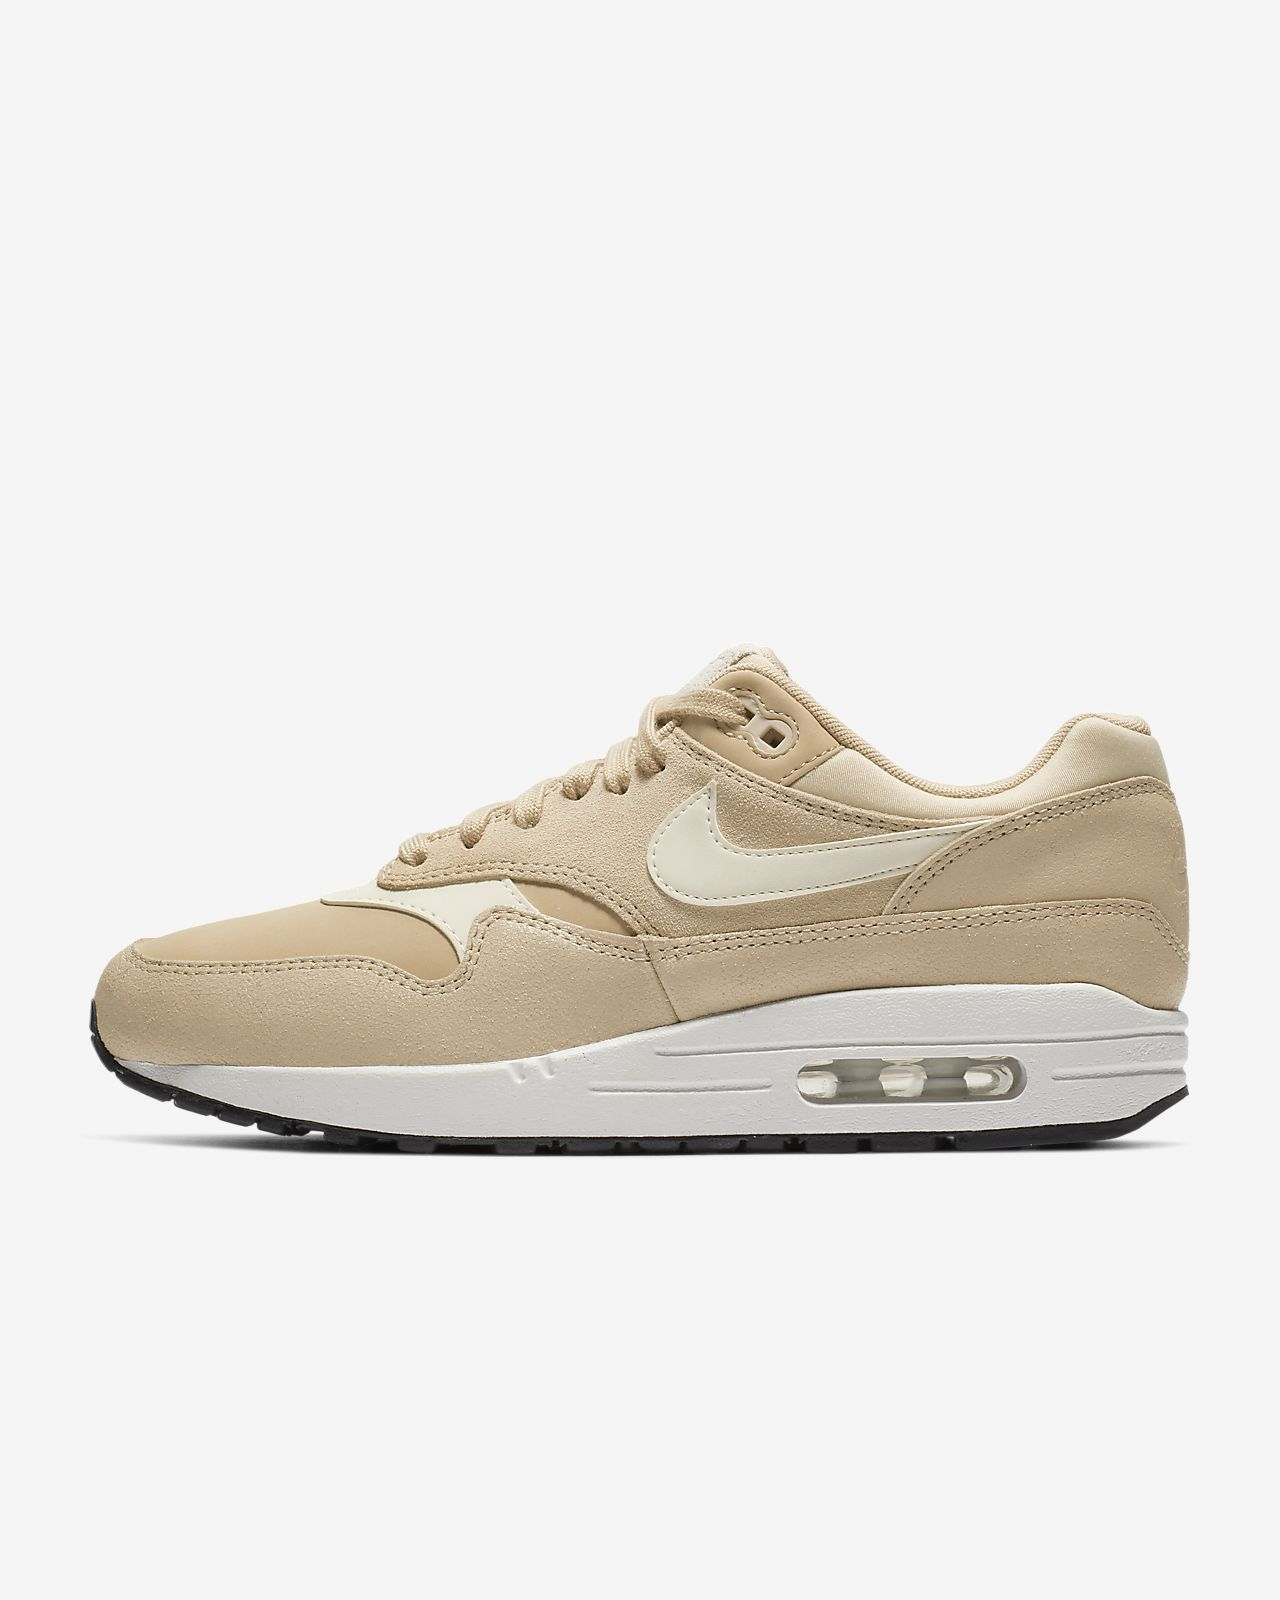 timeless design 65569 2d205 ... Nike Air Max 1 Premium Womens Shoe